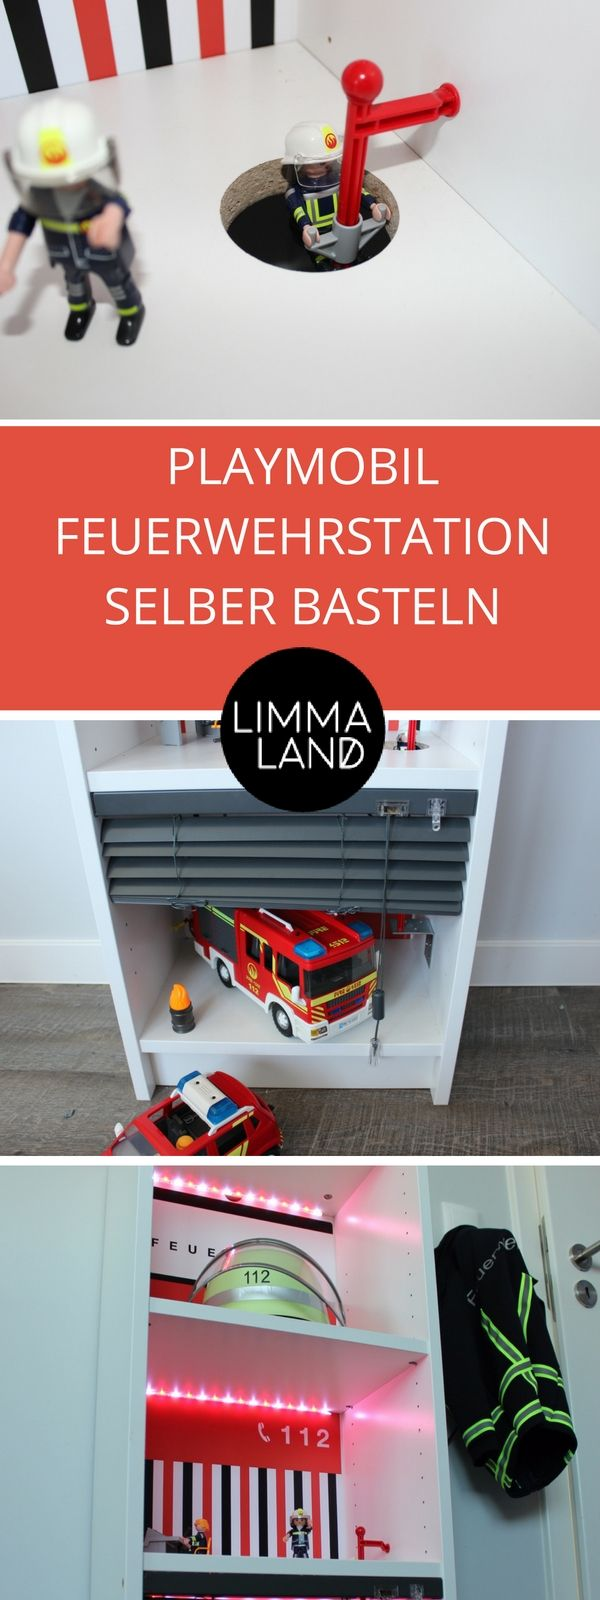 die besten 25 kinderspielzeug selbstgemacht ideen auf pinterest kinder spielen k che. Black Bedroom Furniture Sets. Home Design Ideas